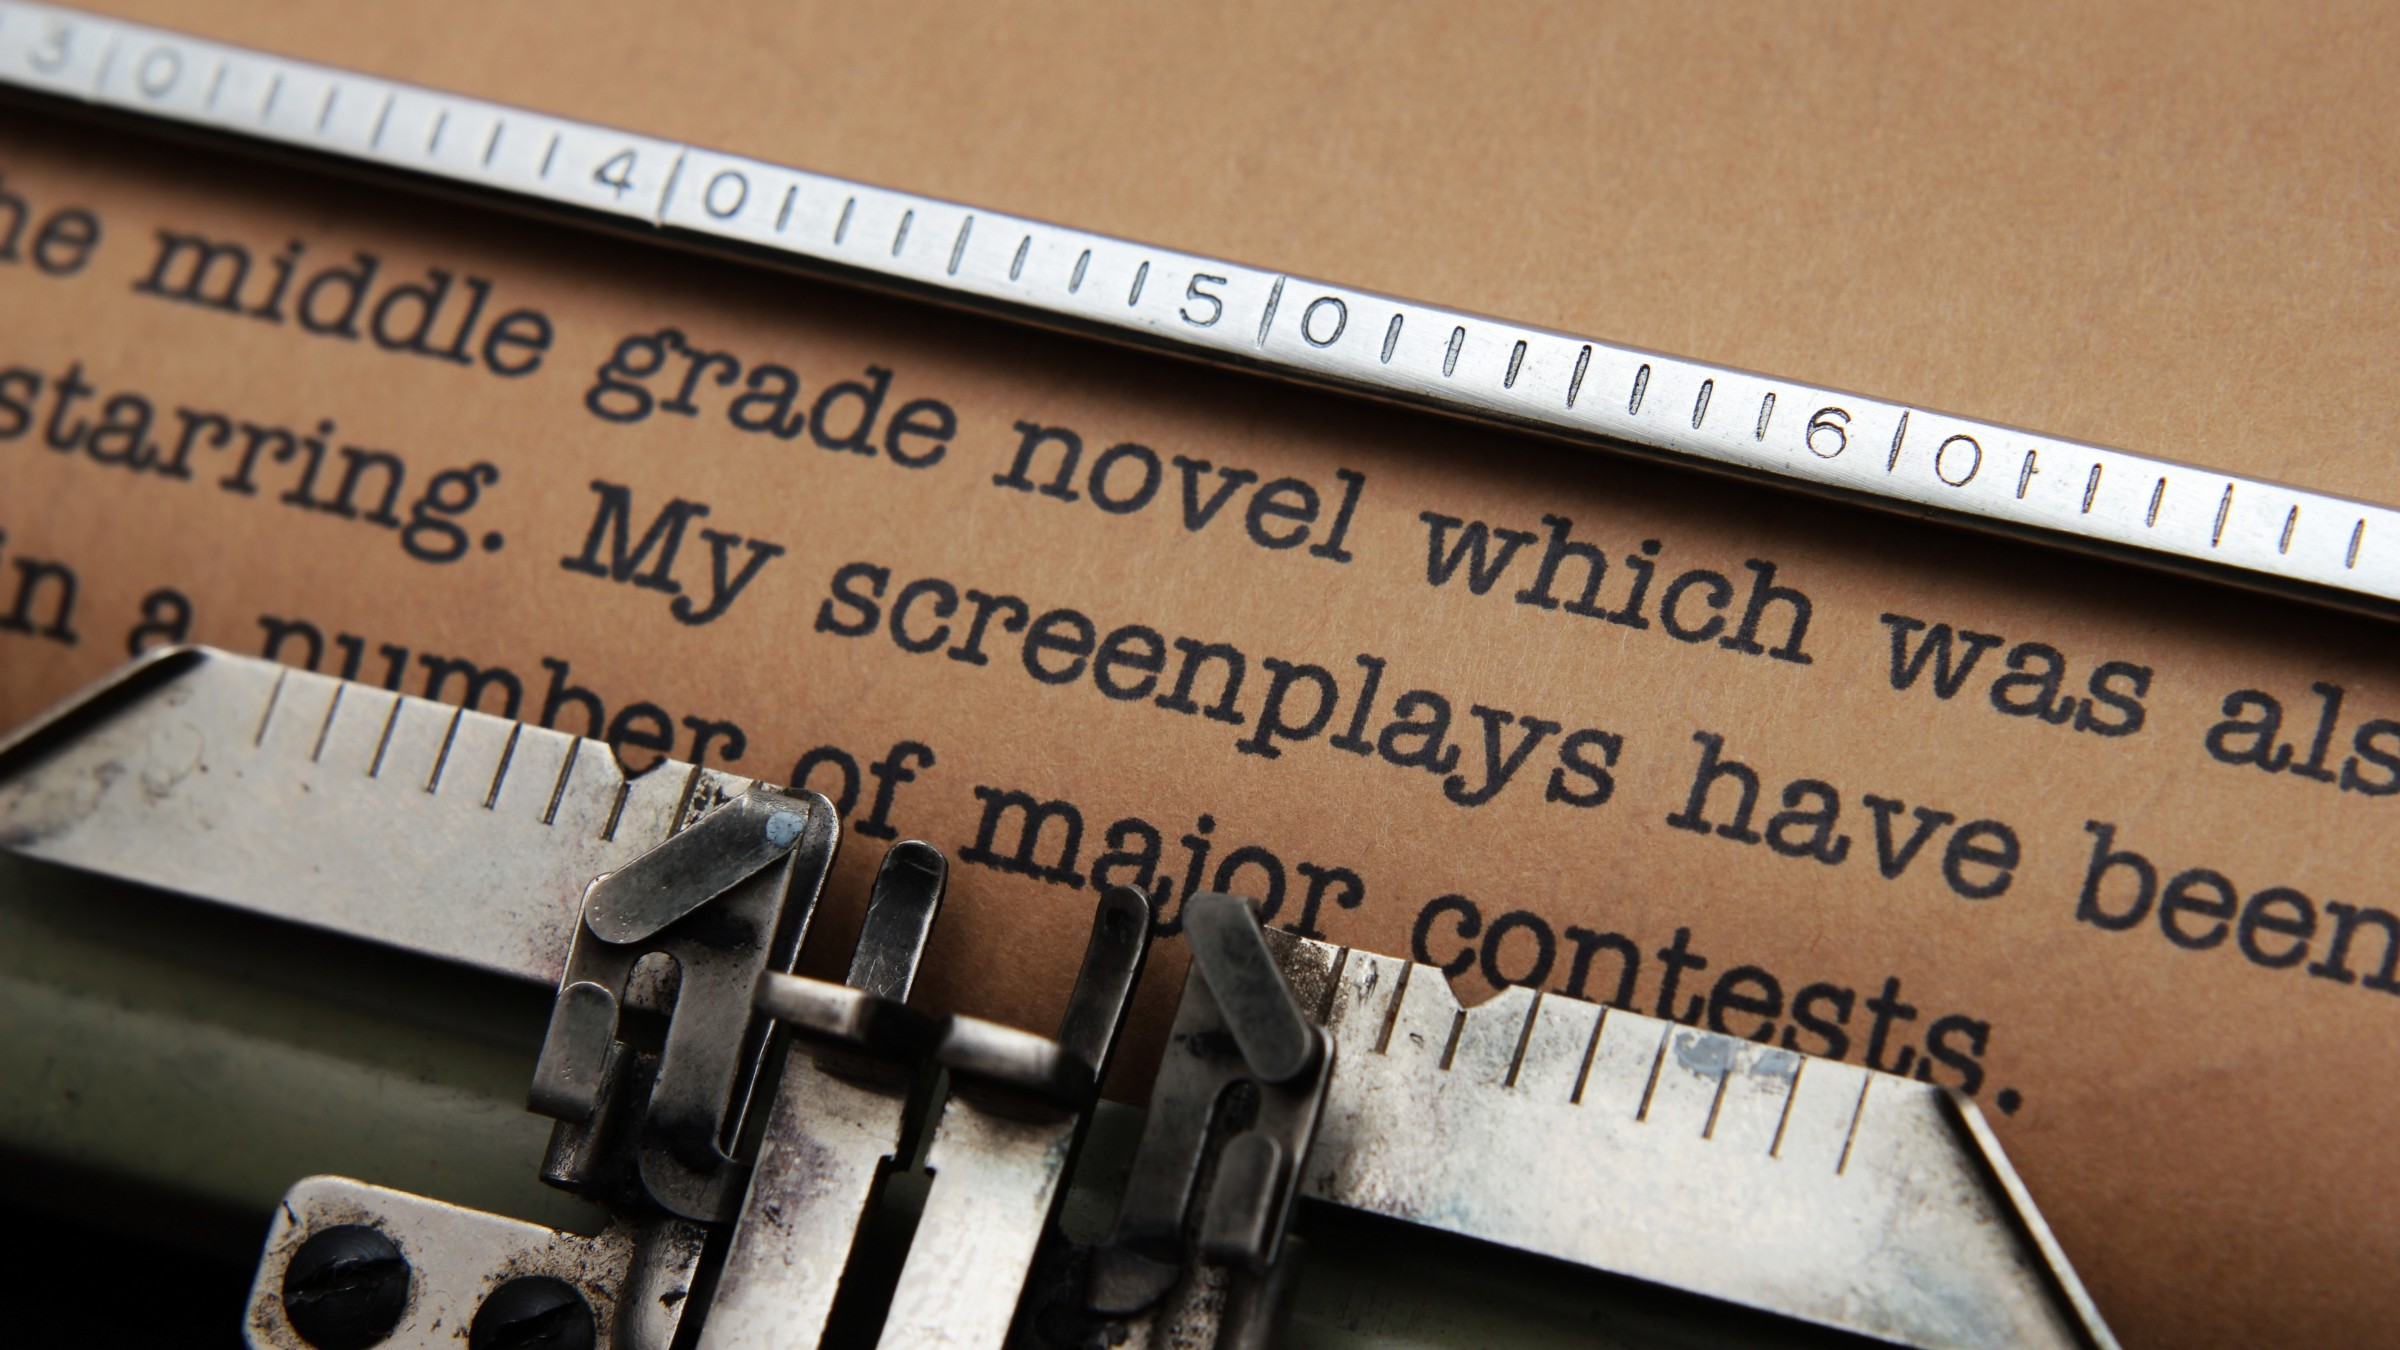 Want to Learn How to Write a Screenplay? This Slideshow Gives You a Great Crash Course